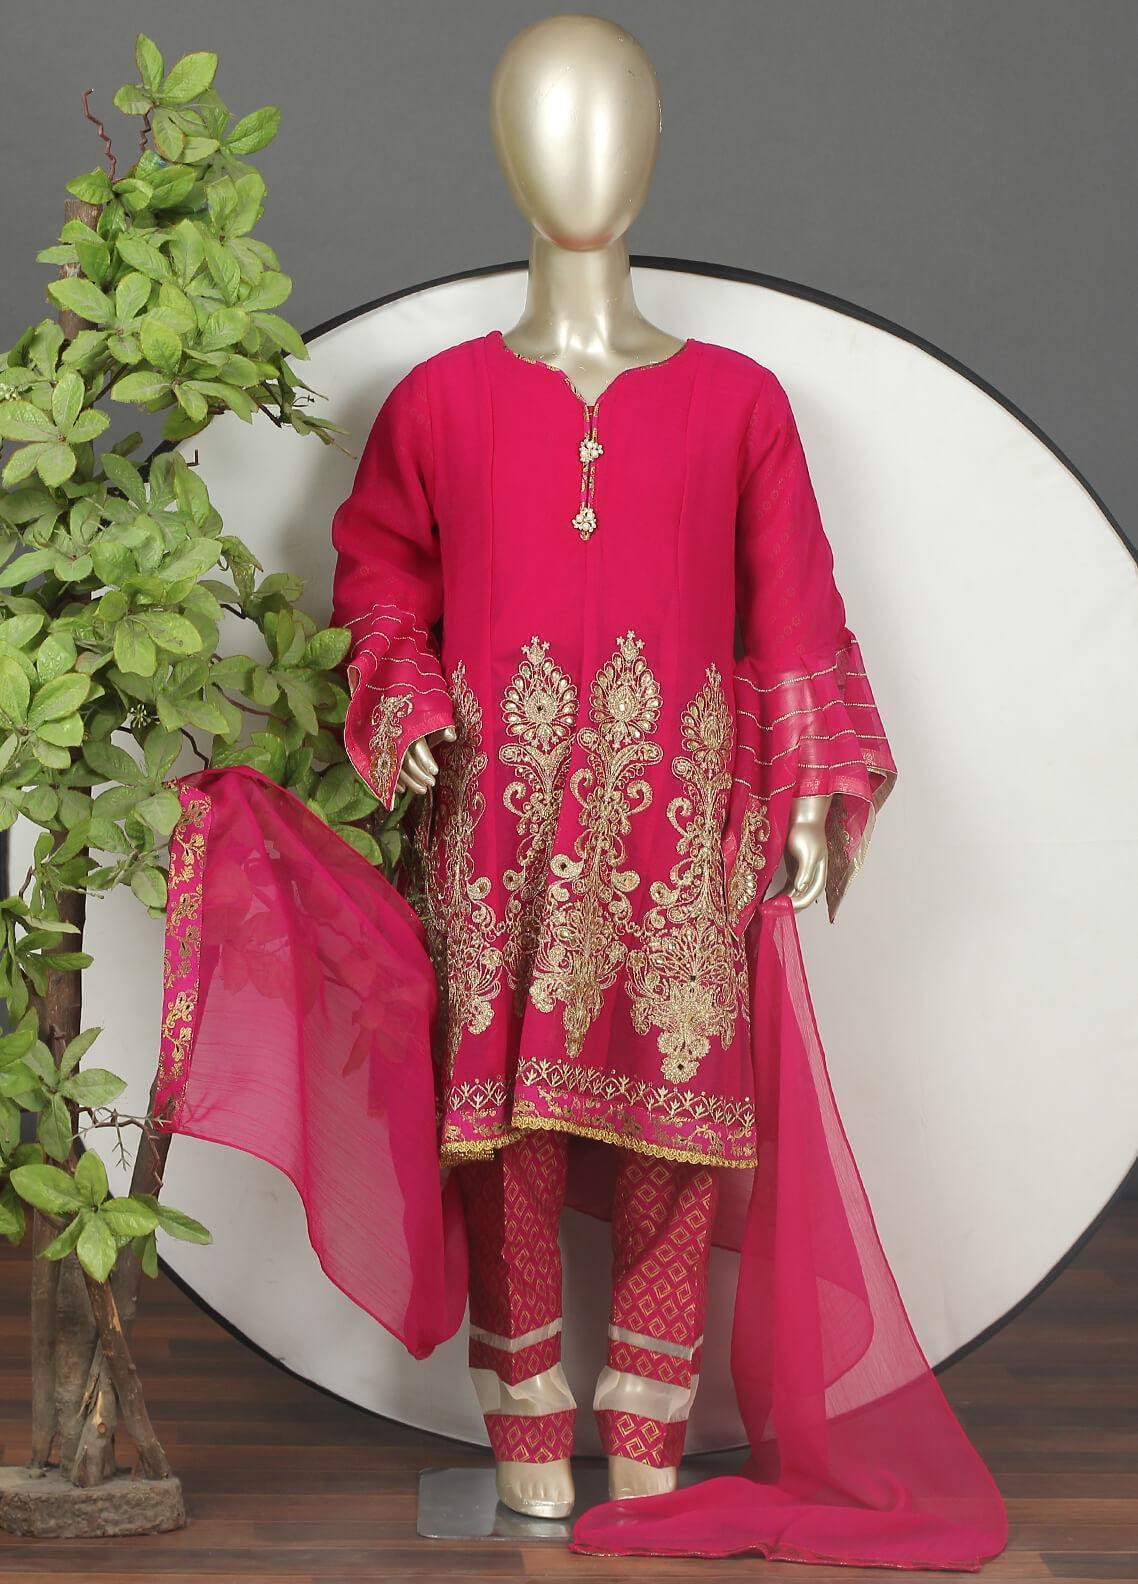 Sanaulla Exclusive Range Chiffon Embroidered 3 Piece Suits for Girls -  G-303 Pink